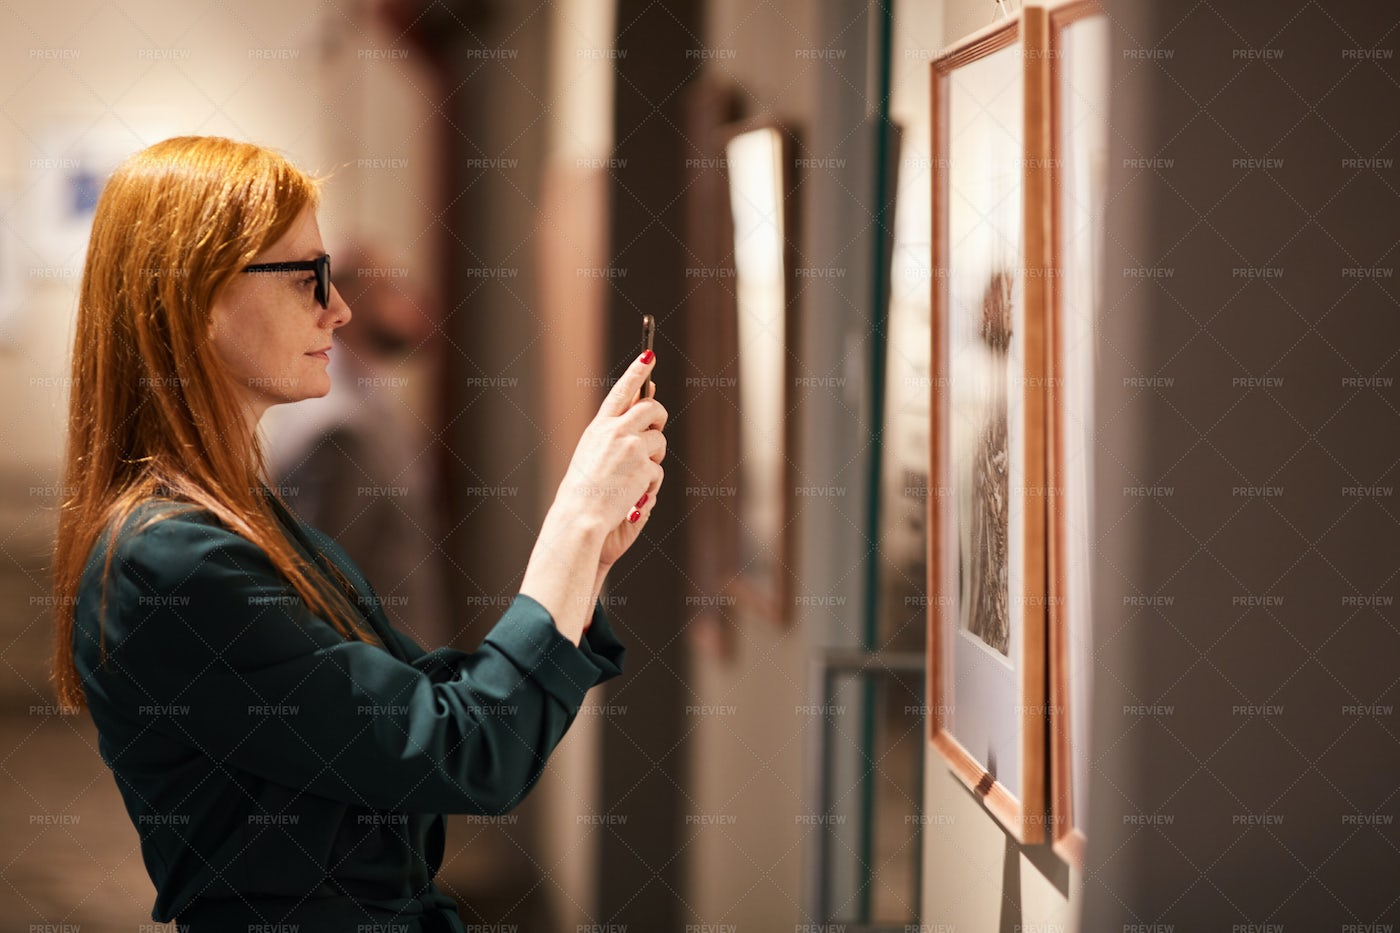 Woman Taking Photo Of Painting: Stock Photos